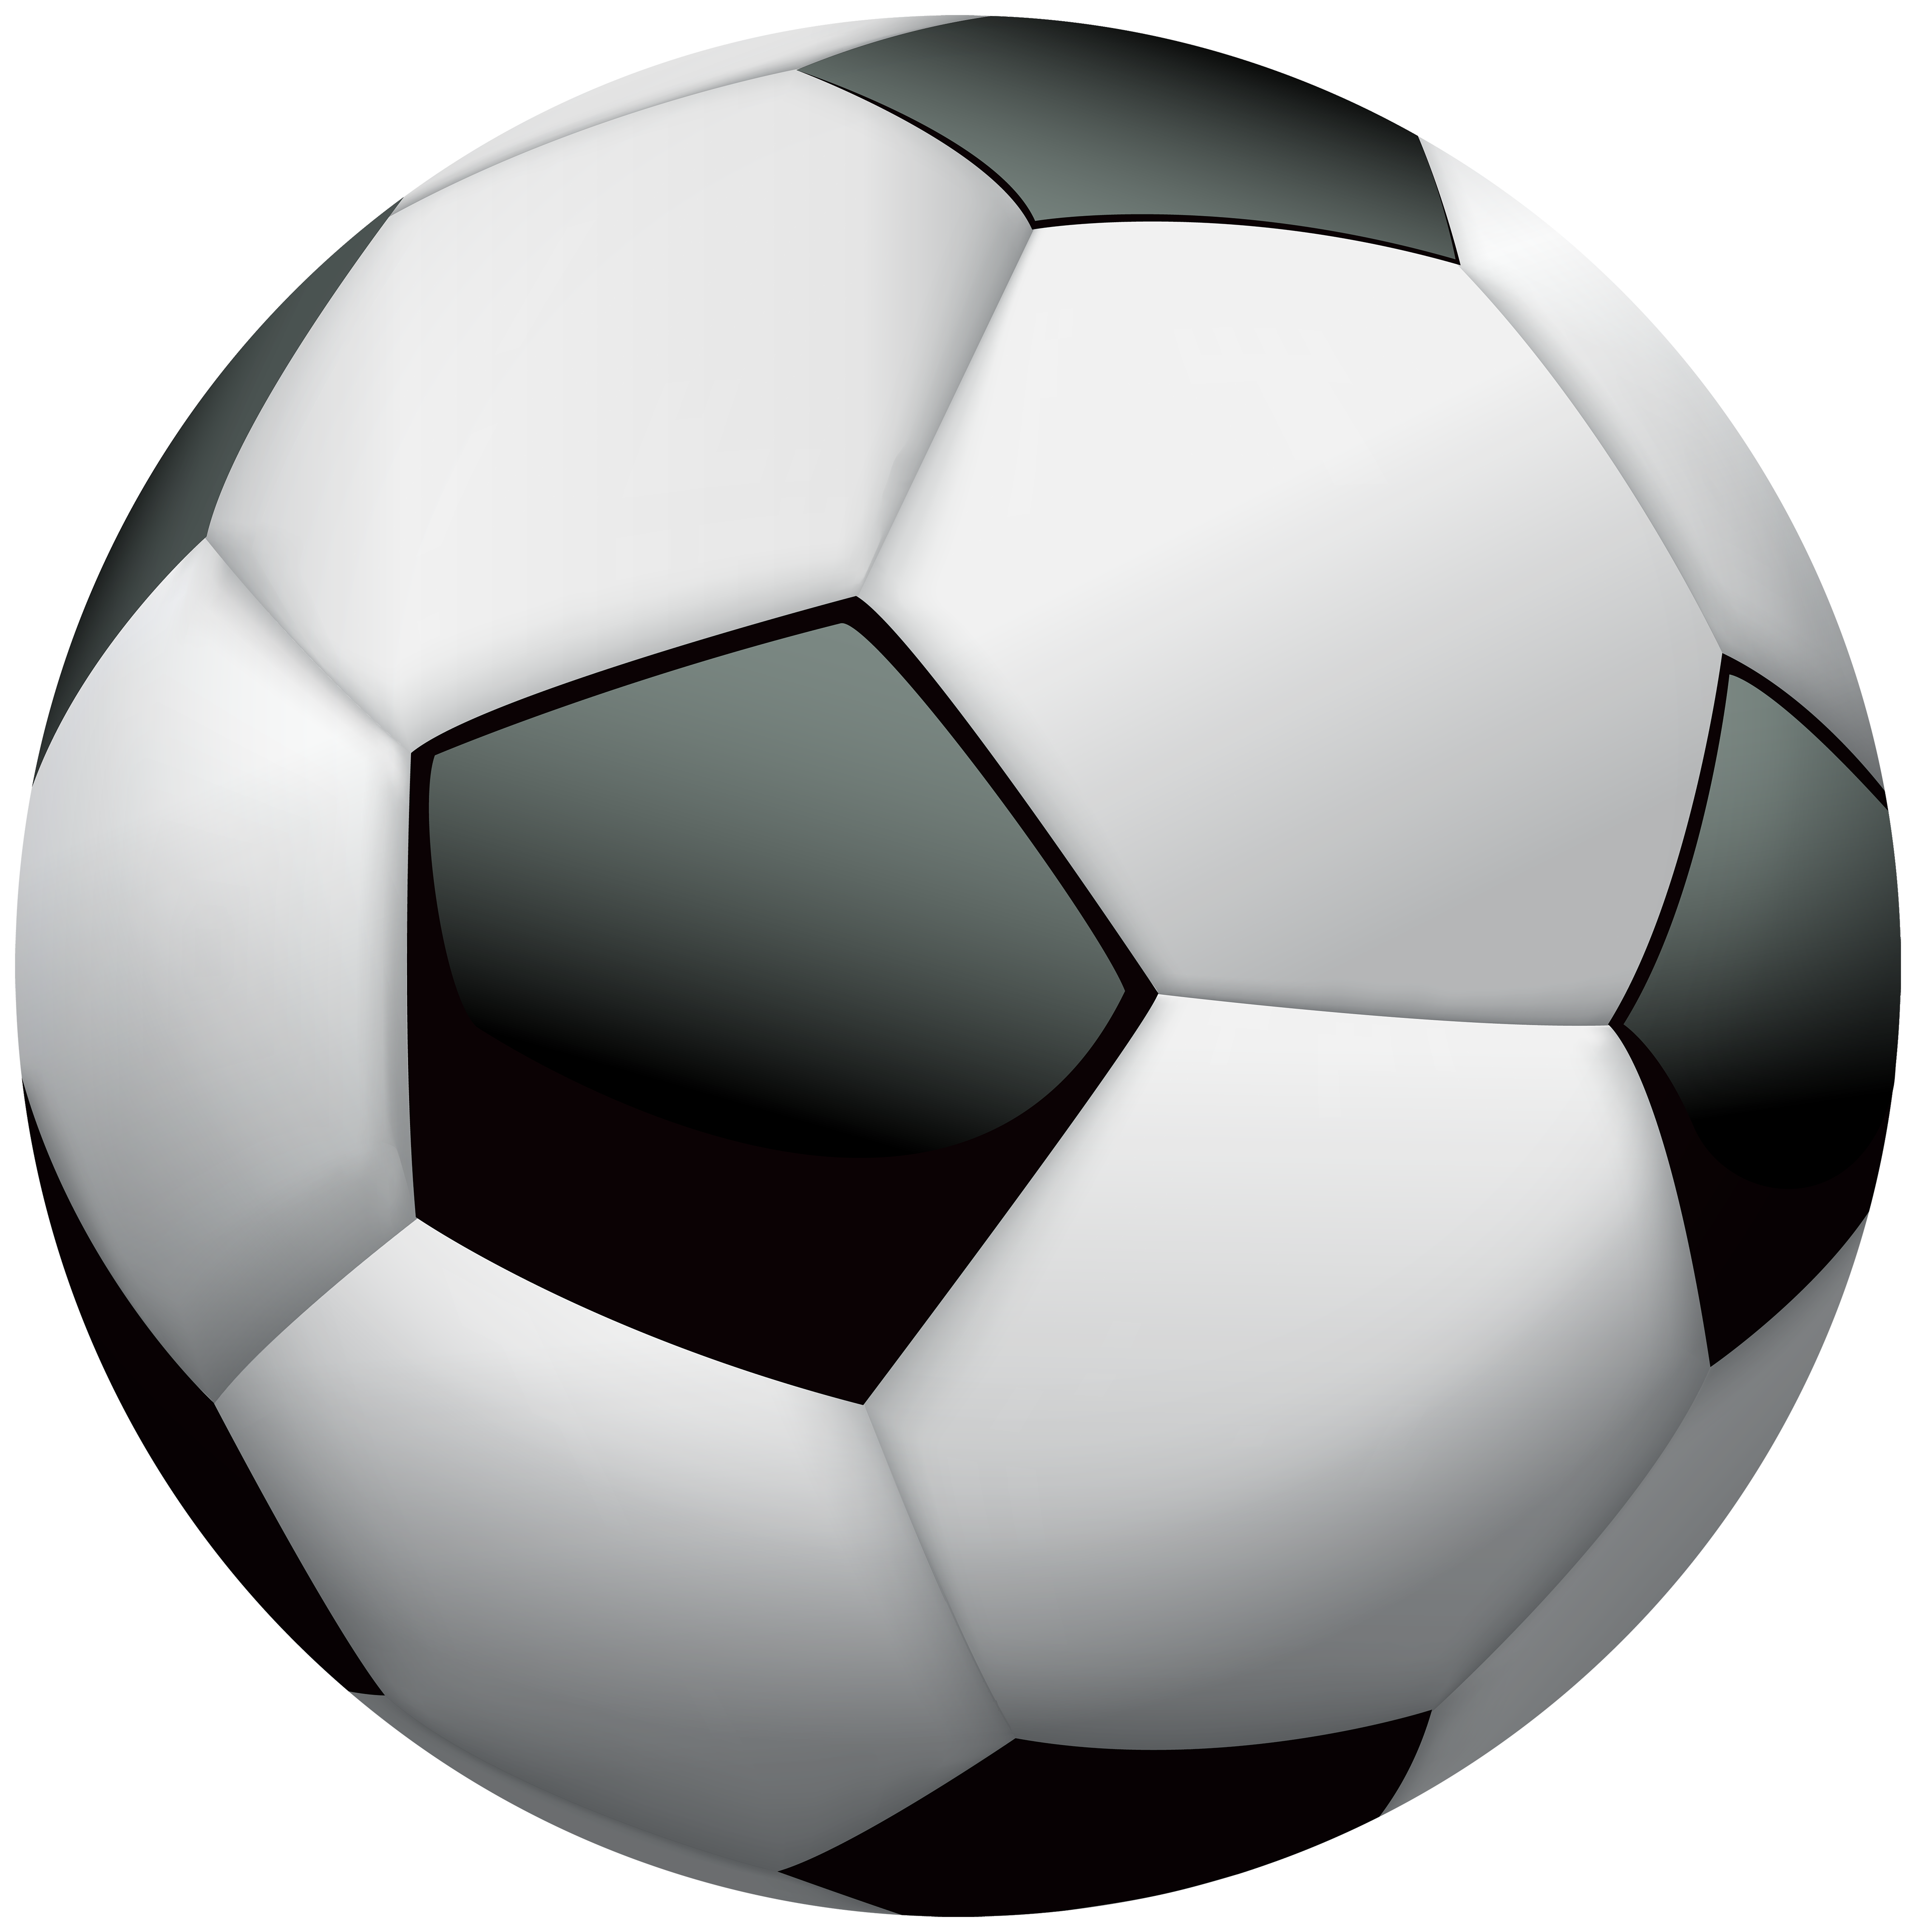 Soccer ball clipart graphic transparent download Soccer Ball PNG Clipart - Best WEB Clipart graphic transparent download